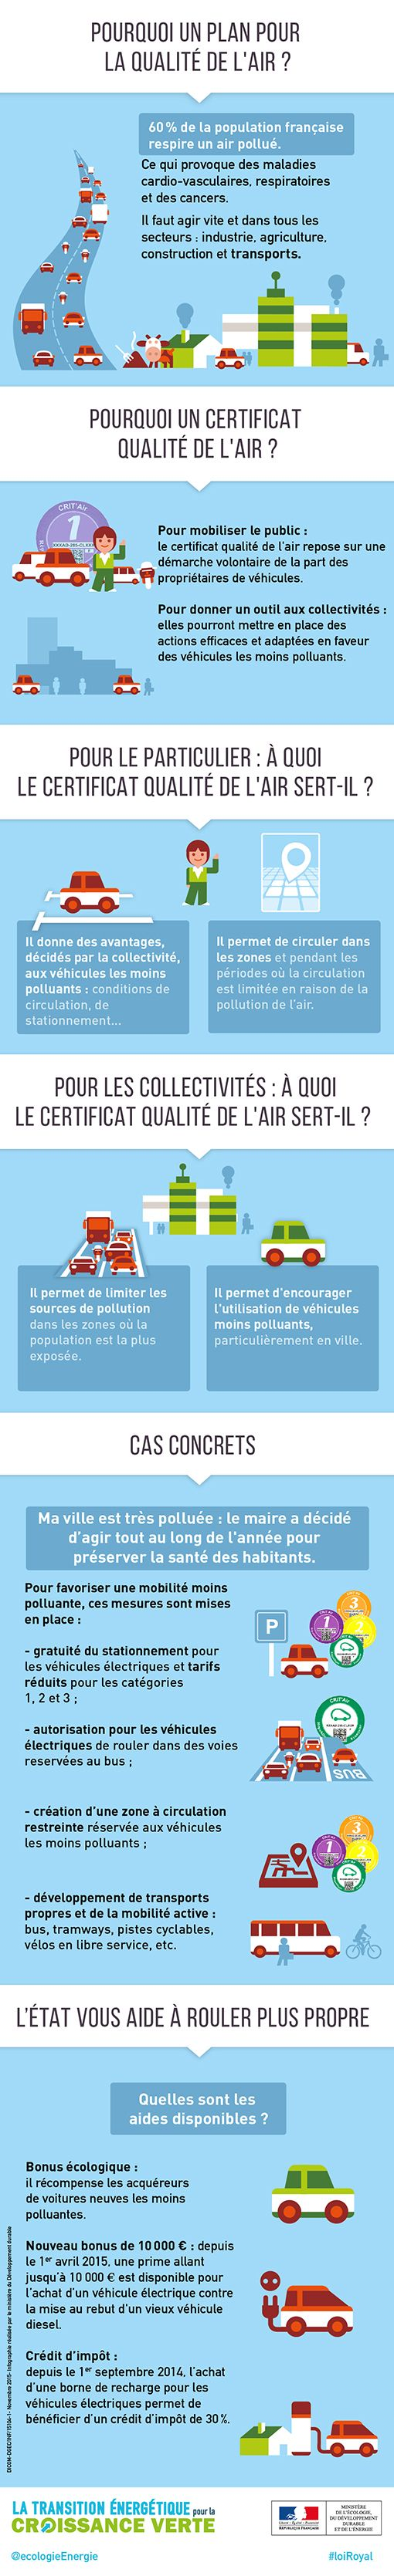 infographie comment utiliser le certificat qualit de l 39 air minist re du d veloppement. Black Bedroom Furniture Sets. Home Design Ideas